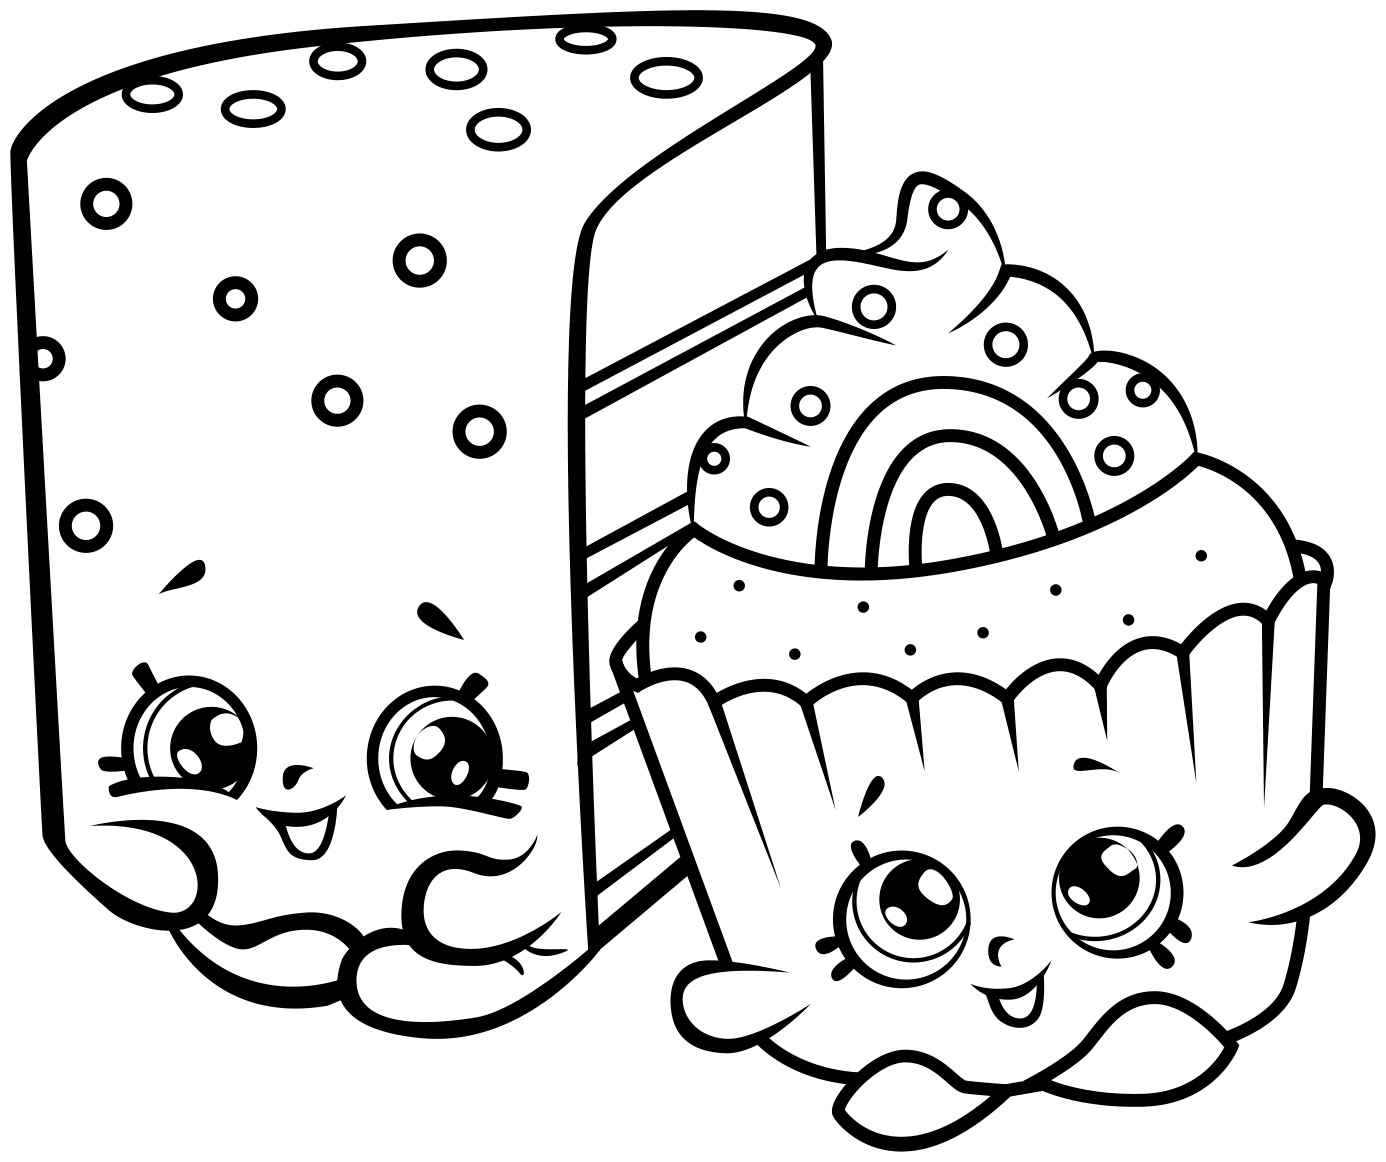 Printable Coloring Pages for Shopkins Free Shopkins Coloring Pages Collection Of 40 Printable Shopkins Coloring Pages Gallery